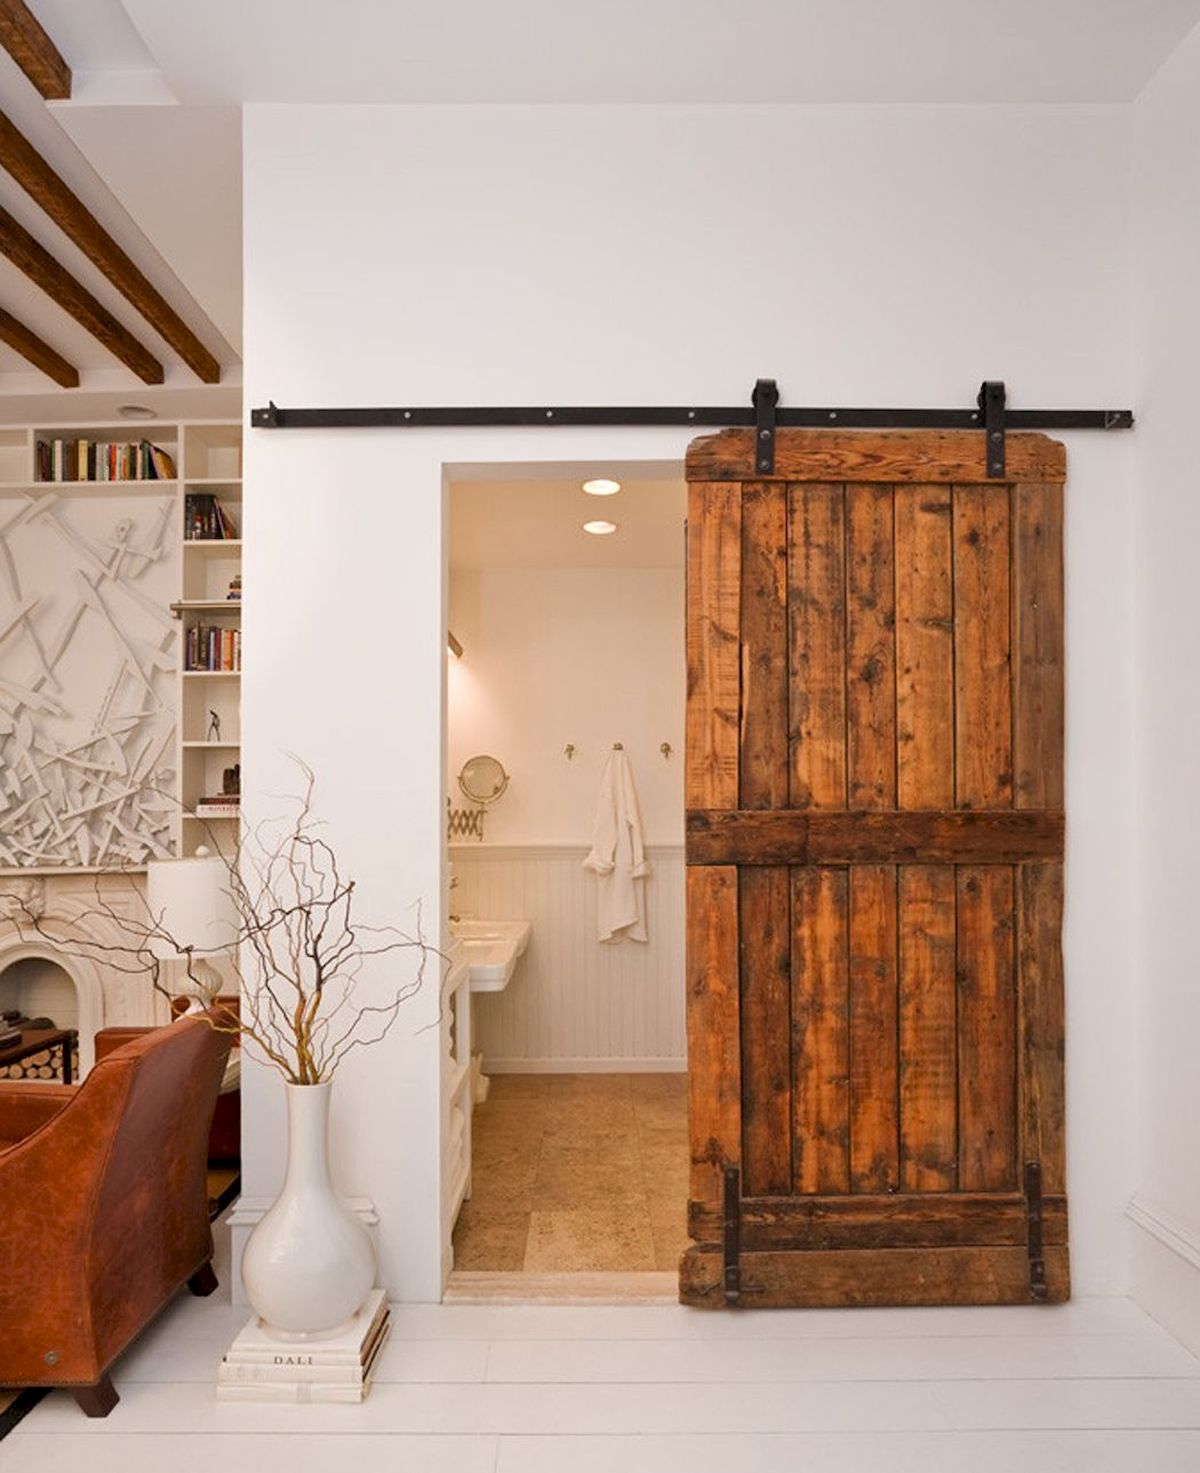 70 Rustic Home Decor Ideas for Doors and Windows (8)